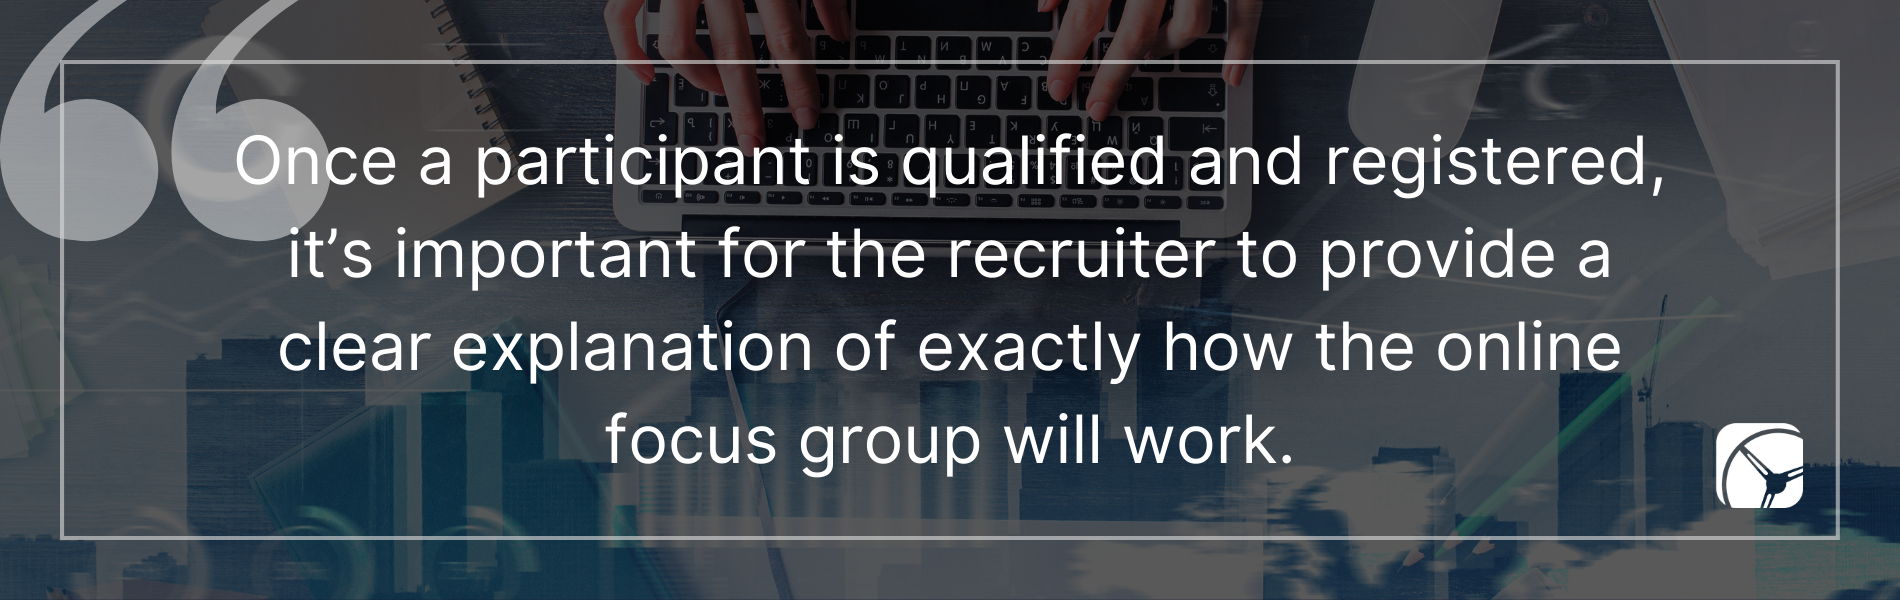 Once a participant is qualified and registered, it's important for the recruiter to provide a clear explanation of exactly how the online focus group will work.